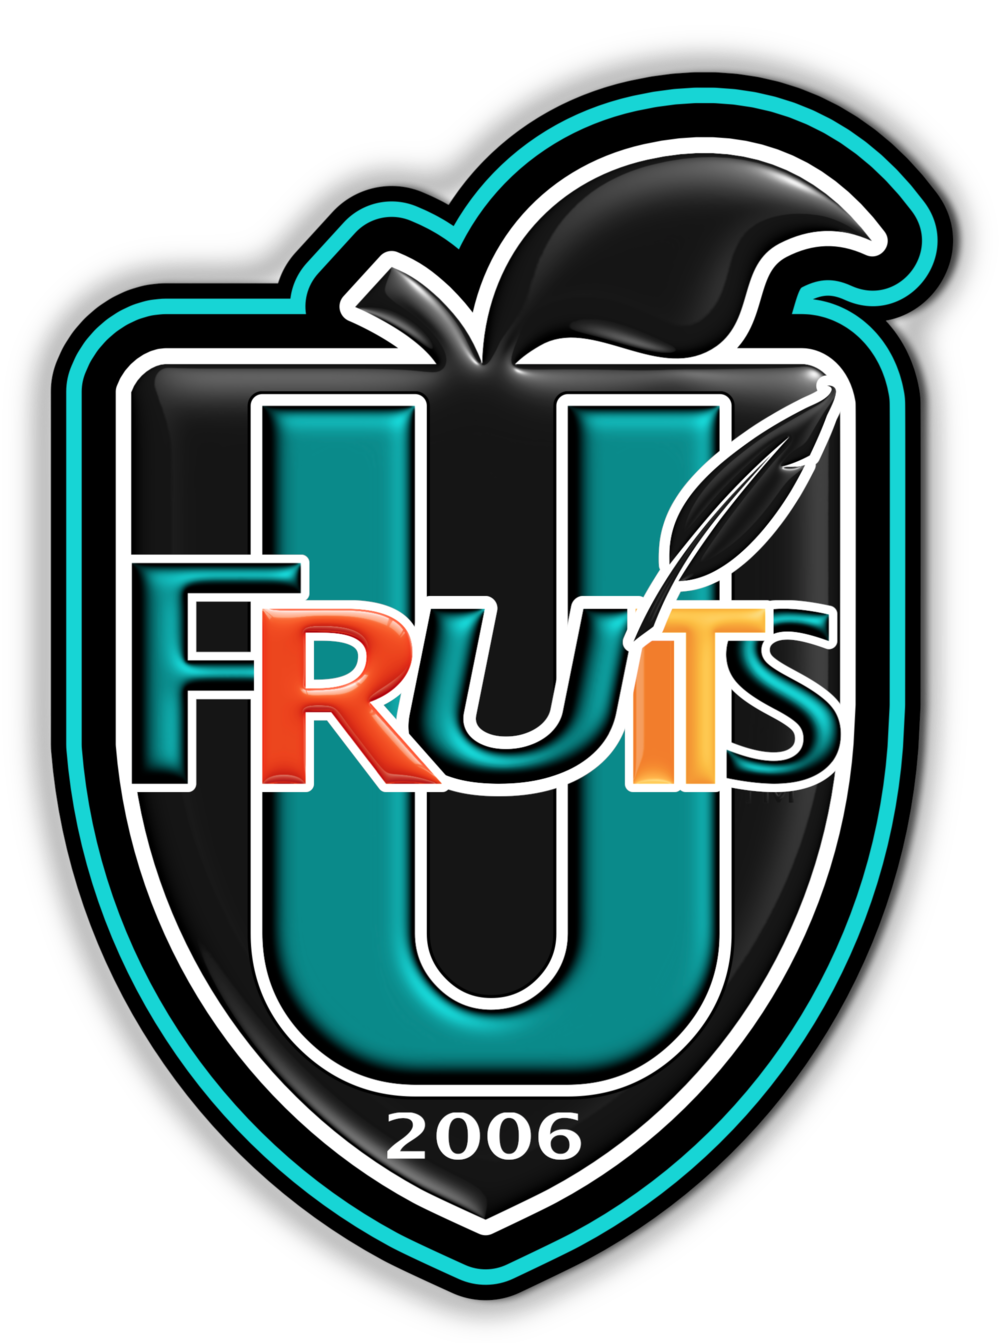 FRUITS U Logo